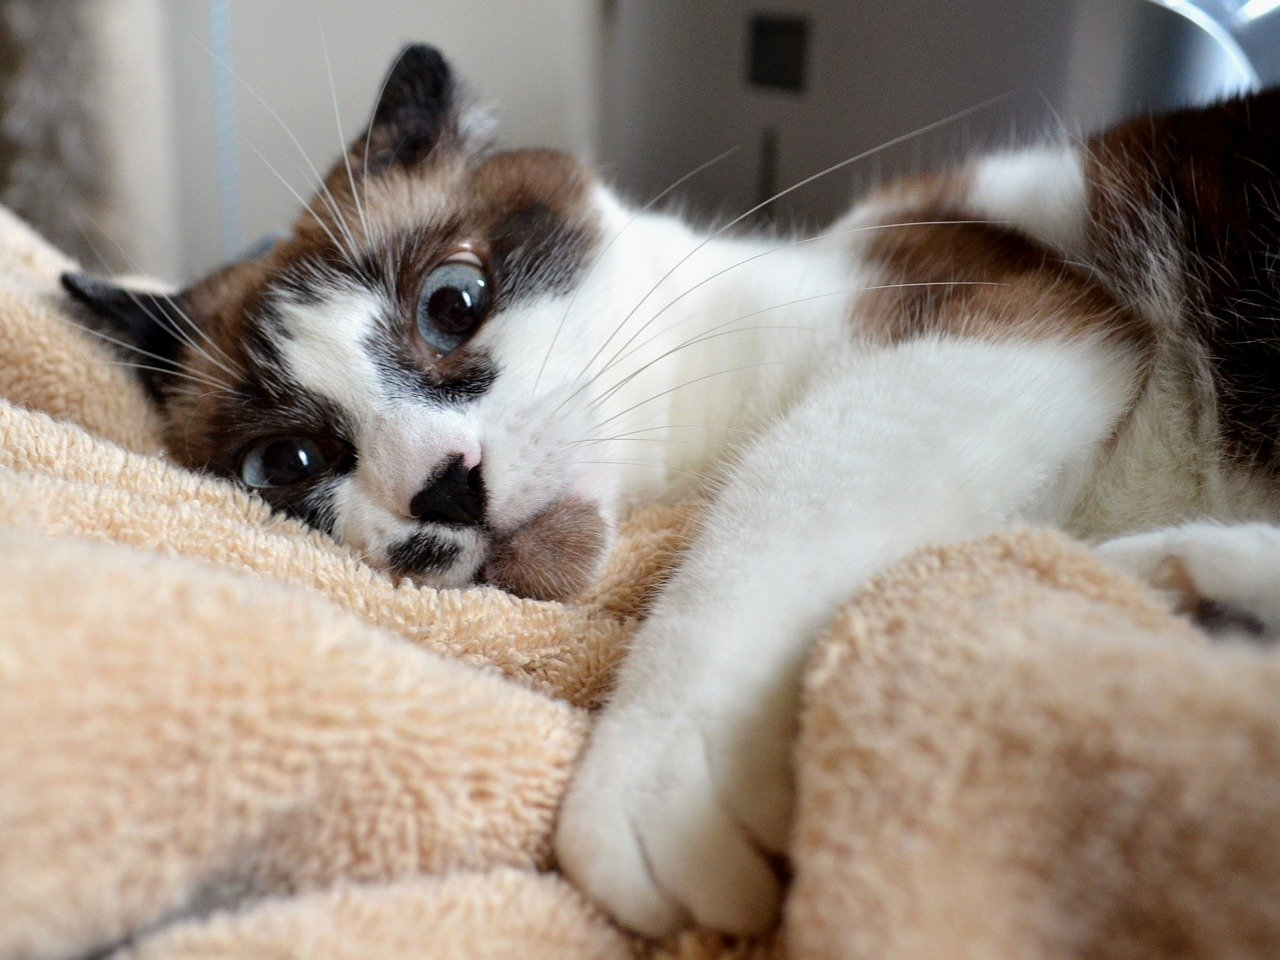 Erica recently found out that her cat is several years older than she thought. What can she do to keep her senior cat healthy? Get our tips in this post.